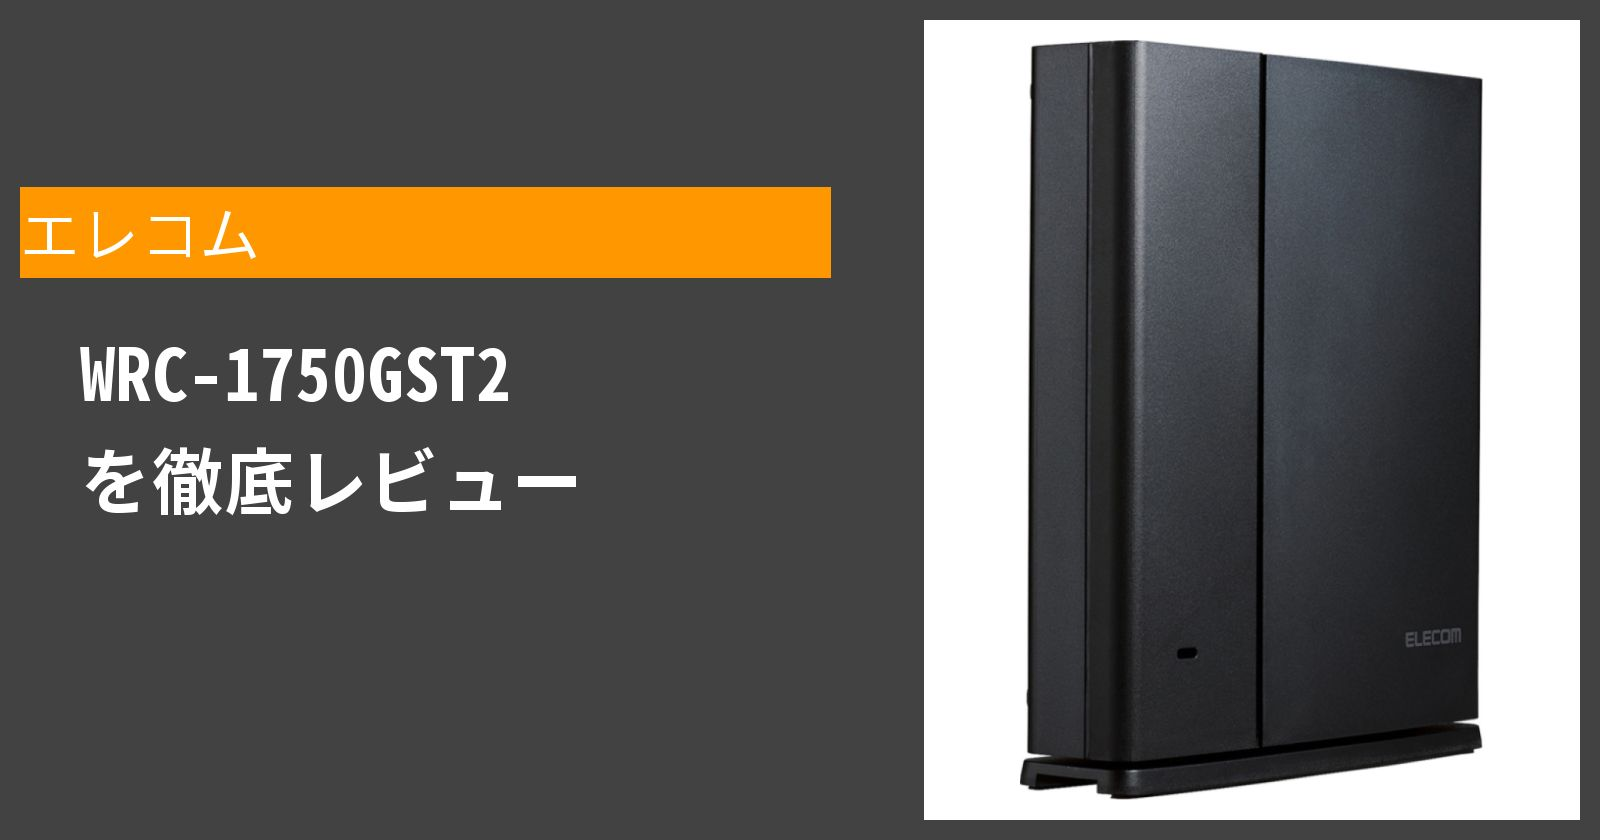 WRC-1750GST2を徹底評価